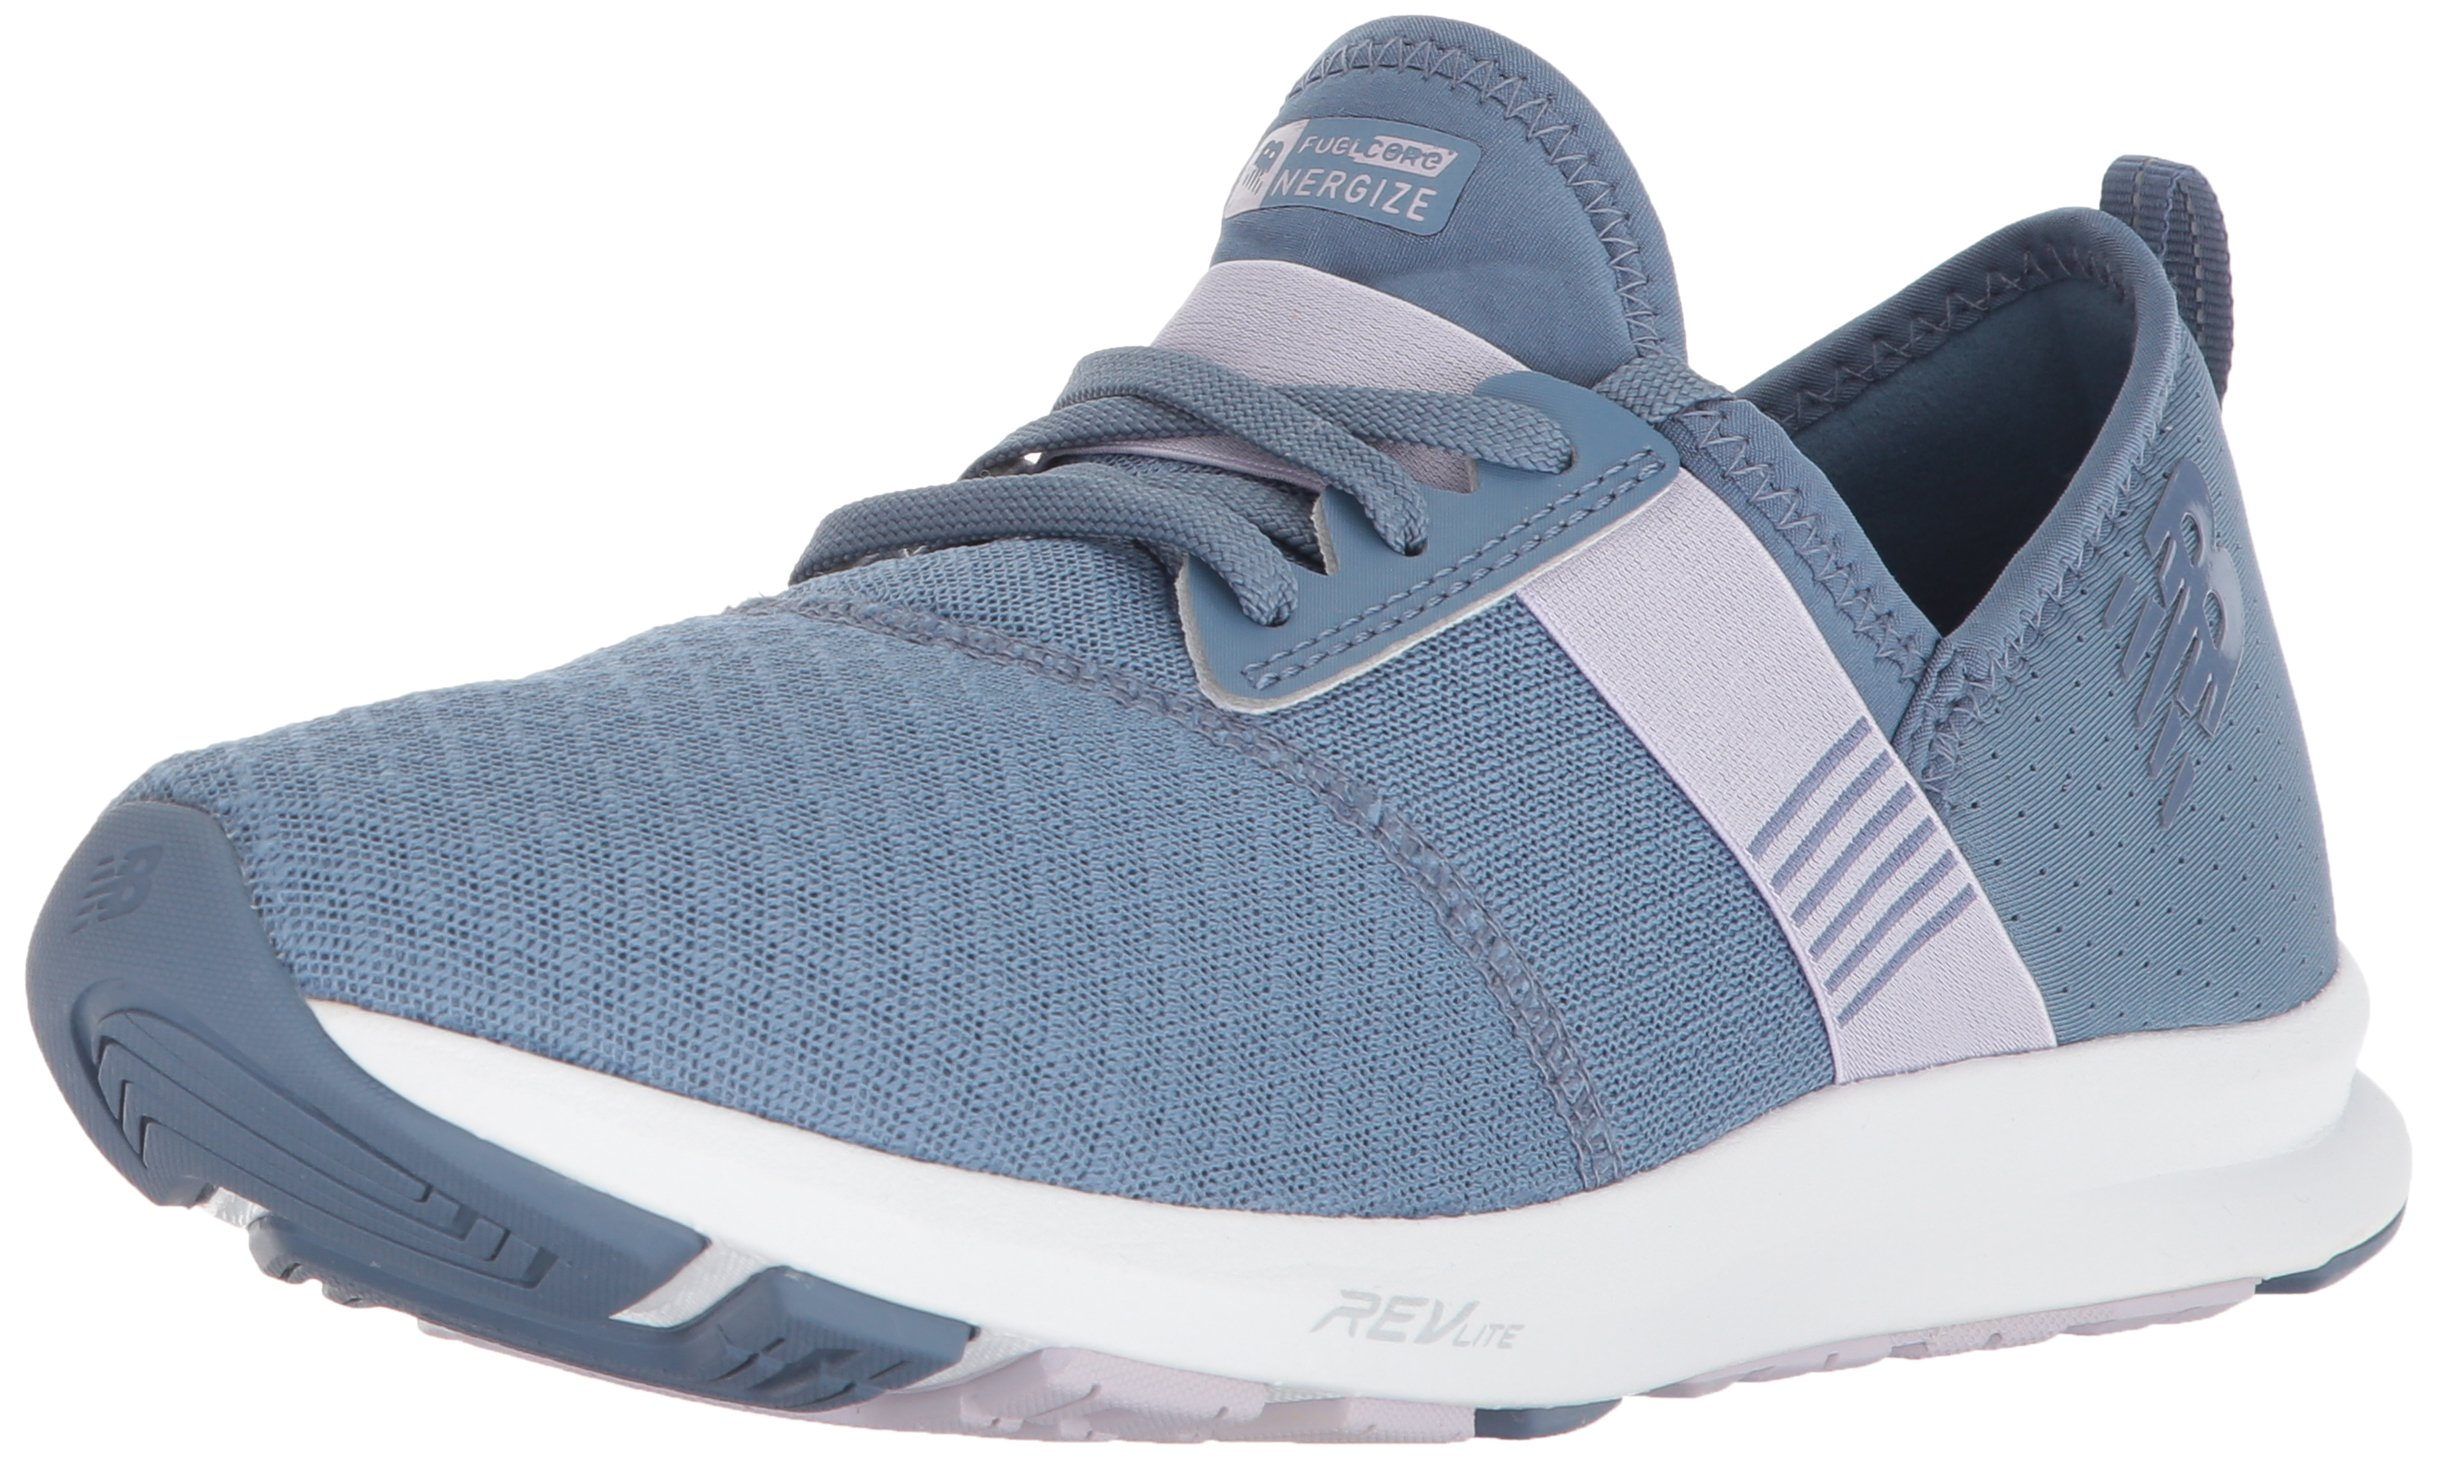 New Balance Women's Nergize v1 Fuelcore Cross Trainer, Deep Porcelain/Thistle, 5 B US